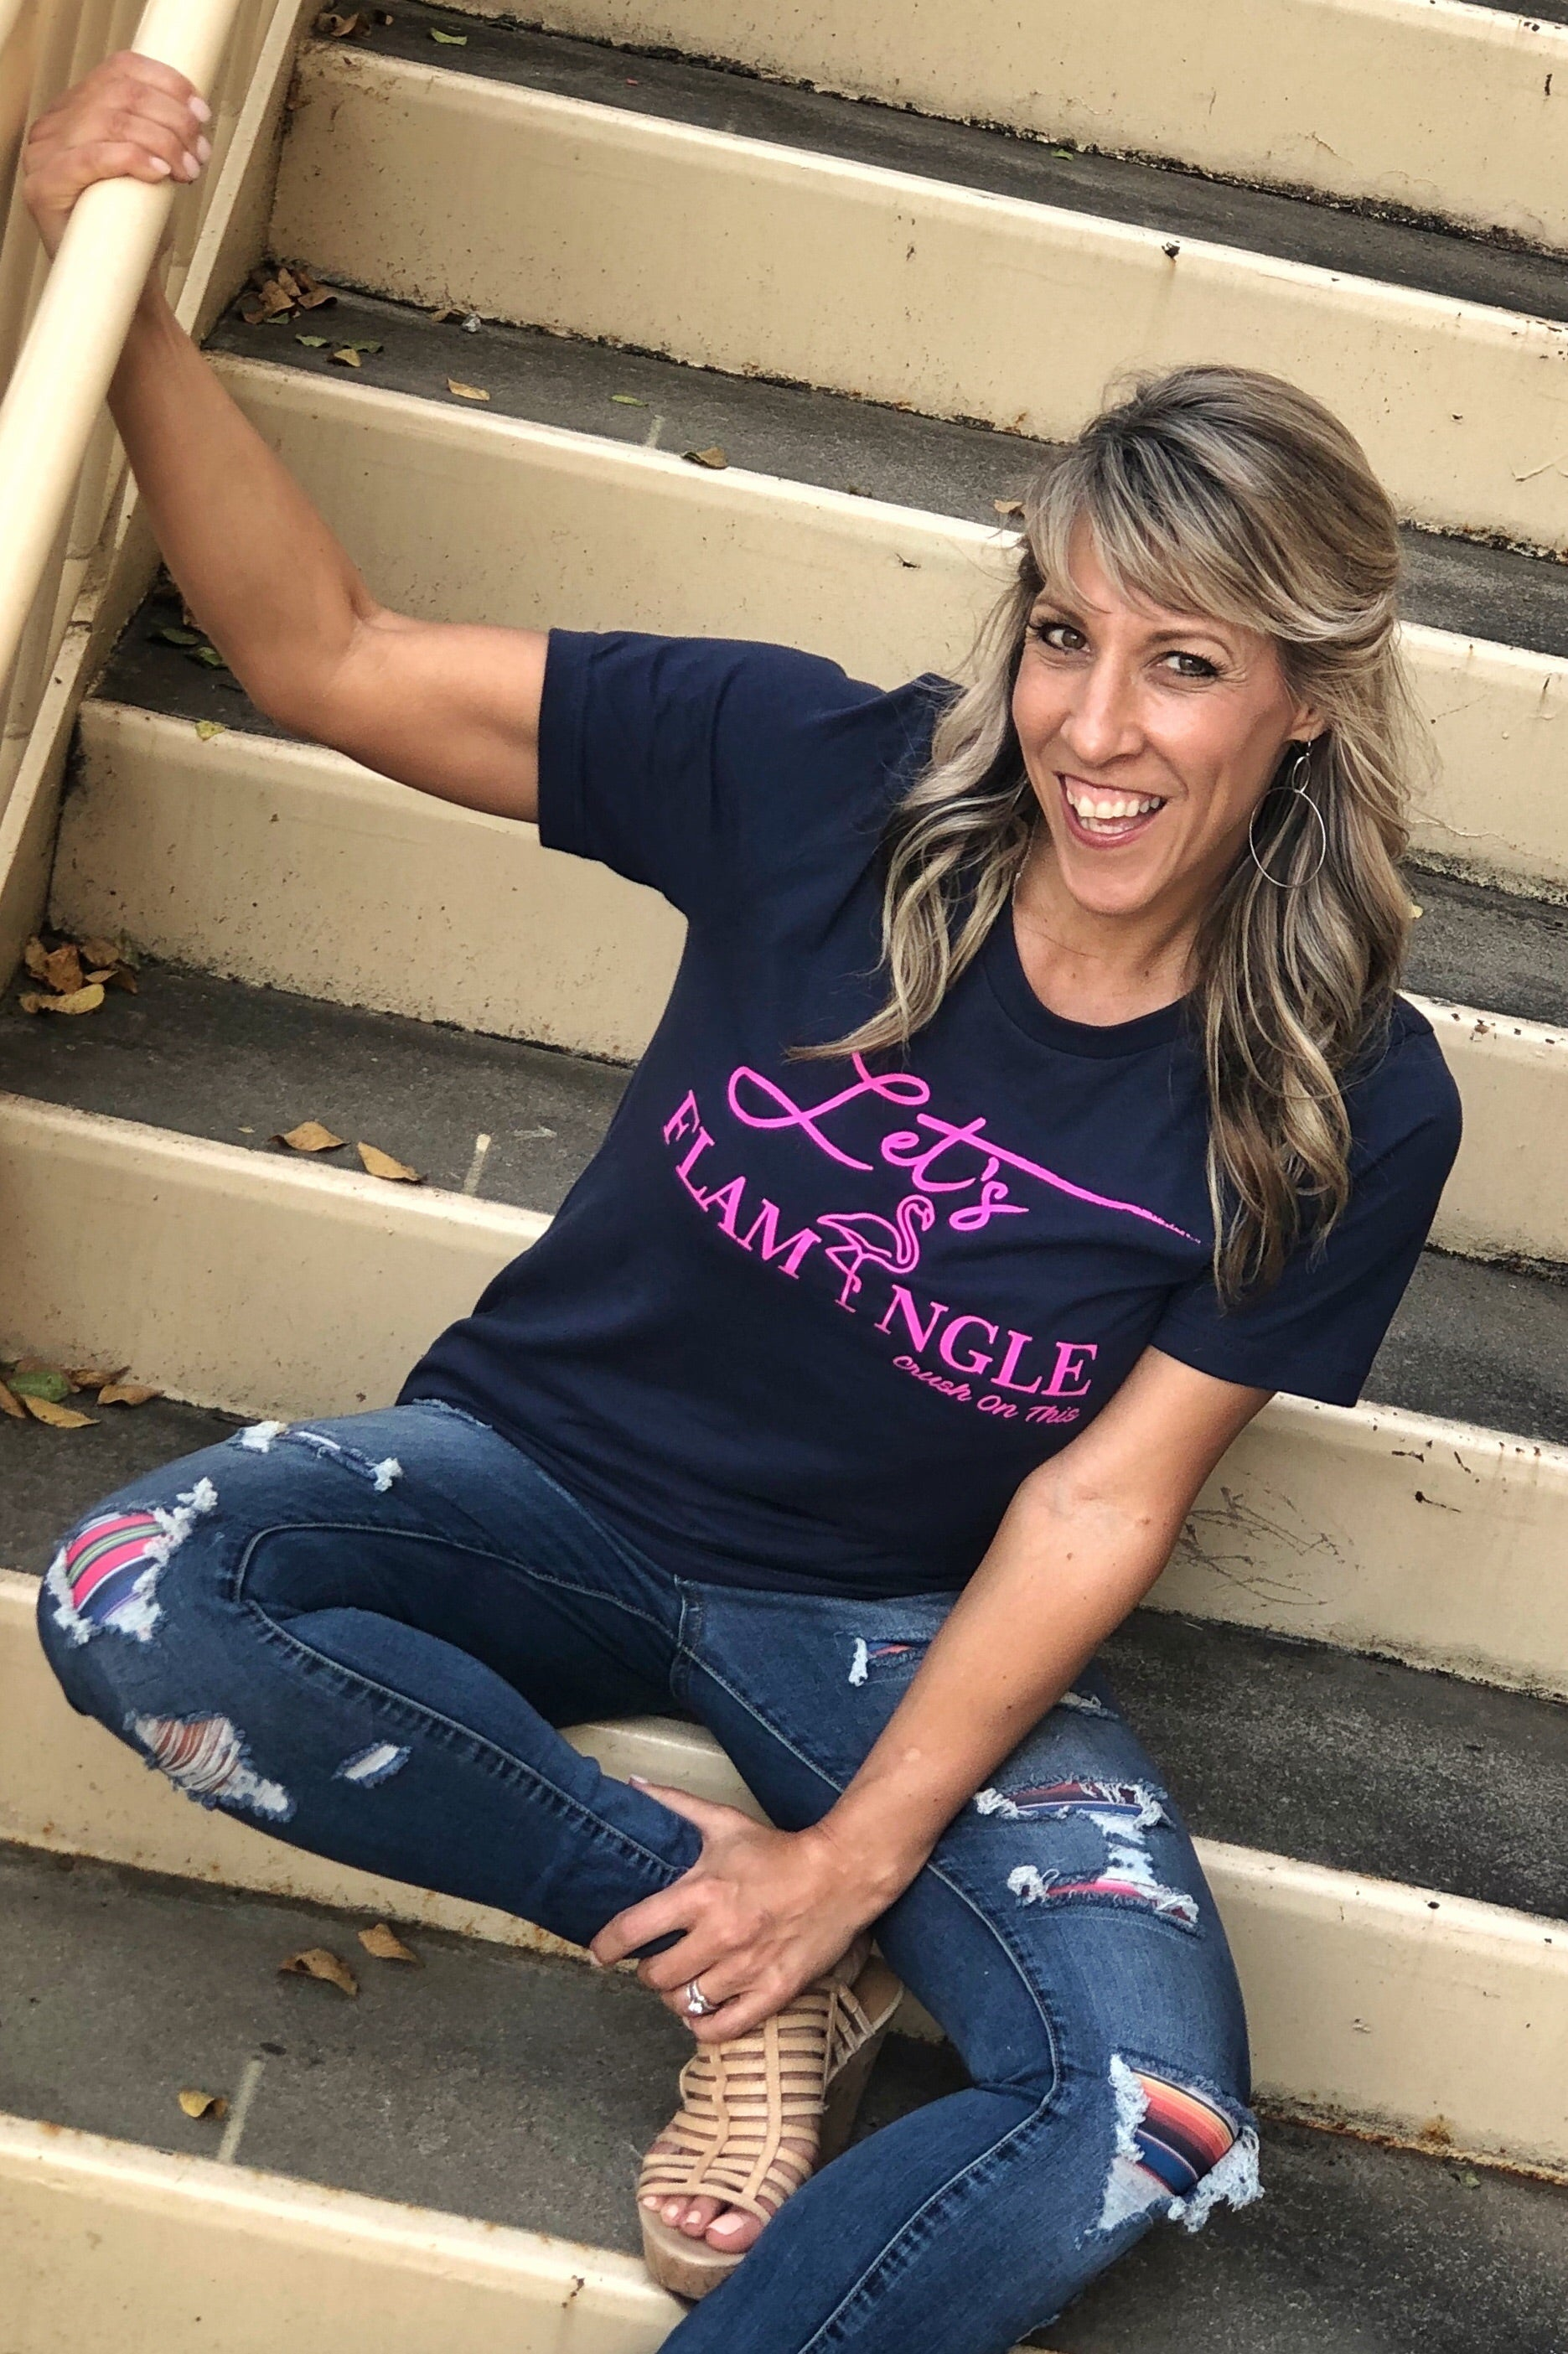 Let's Flamingle Tee by Crush On This, Short Sleeve Navy Tee with Pink Flamingo